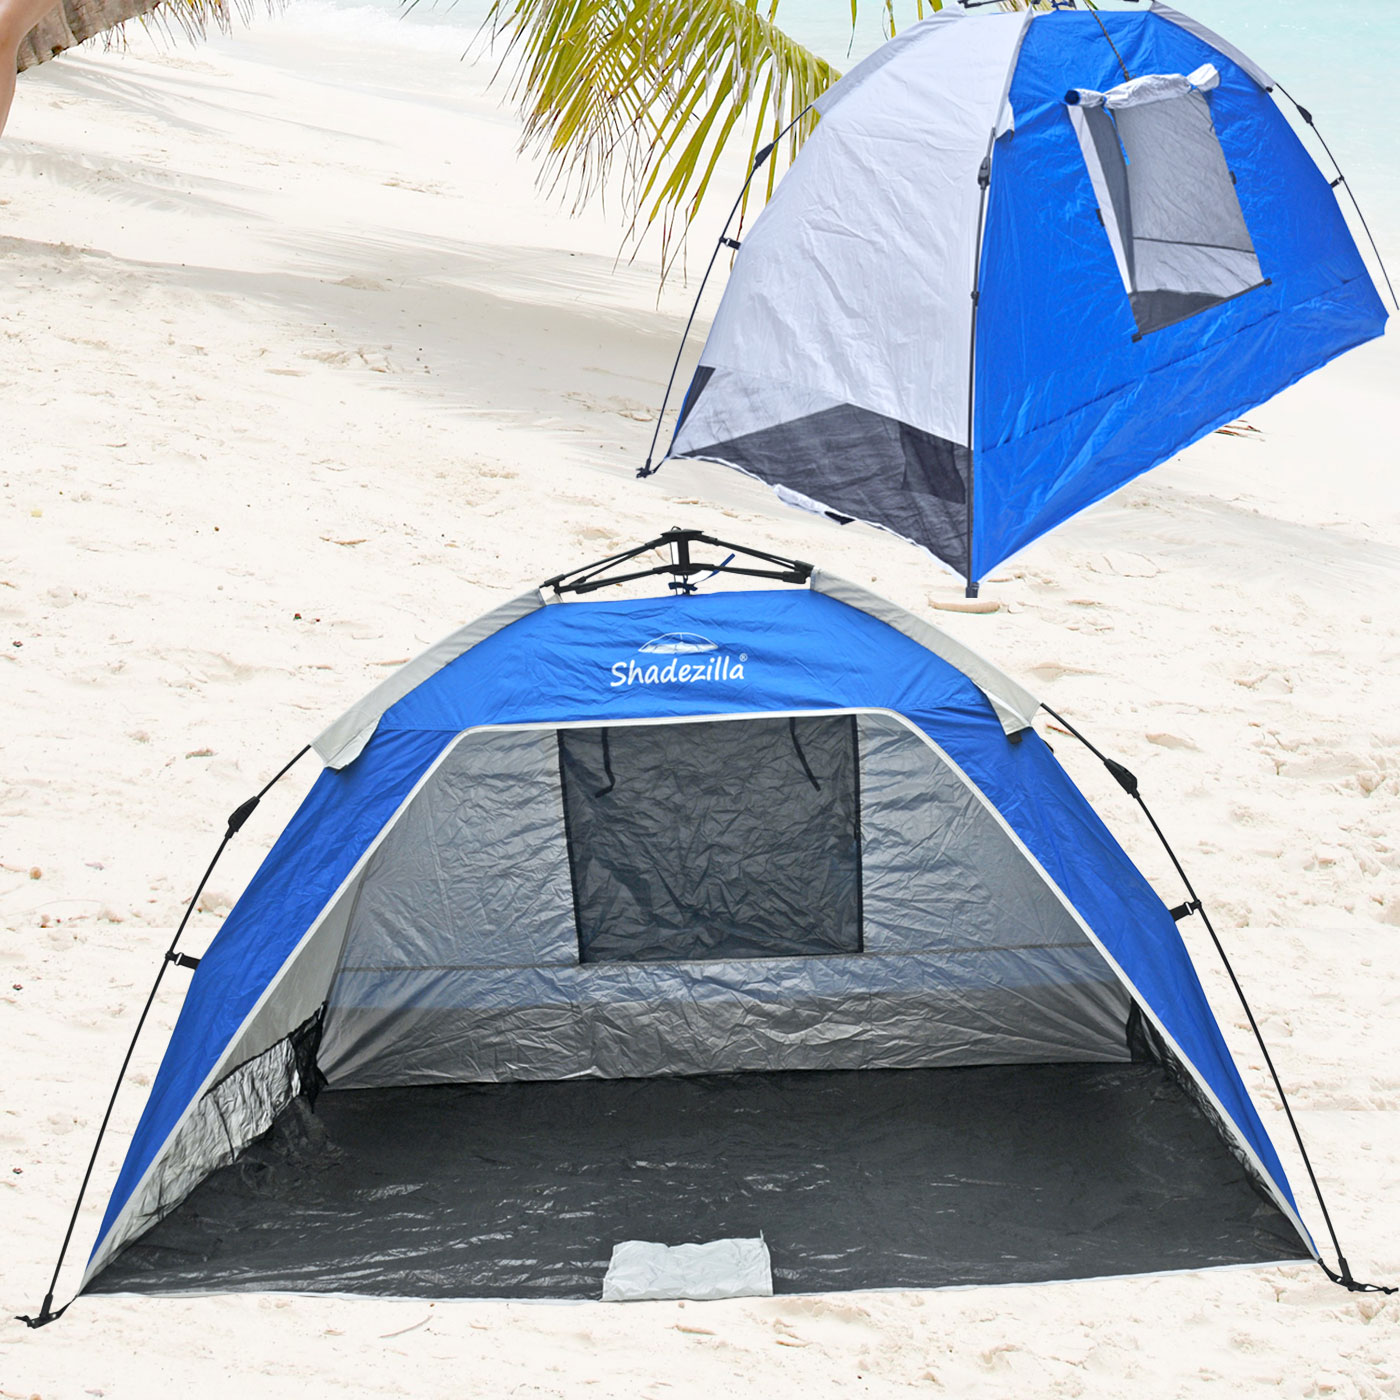 Cabana Portable Shelter : Deluxe instant popup beach tent shelter cabana upf